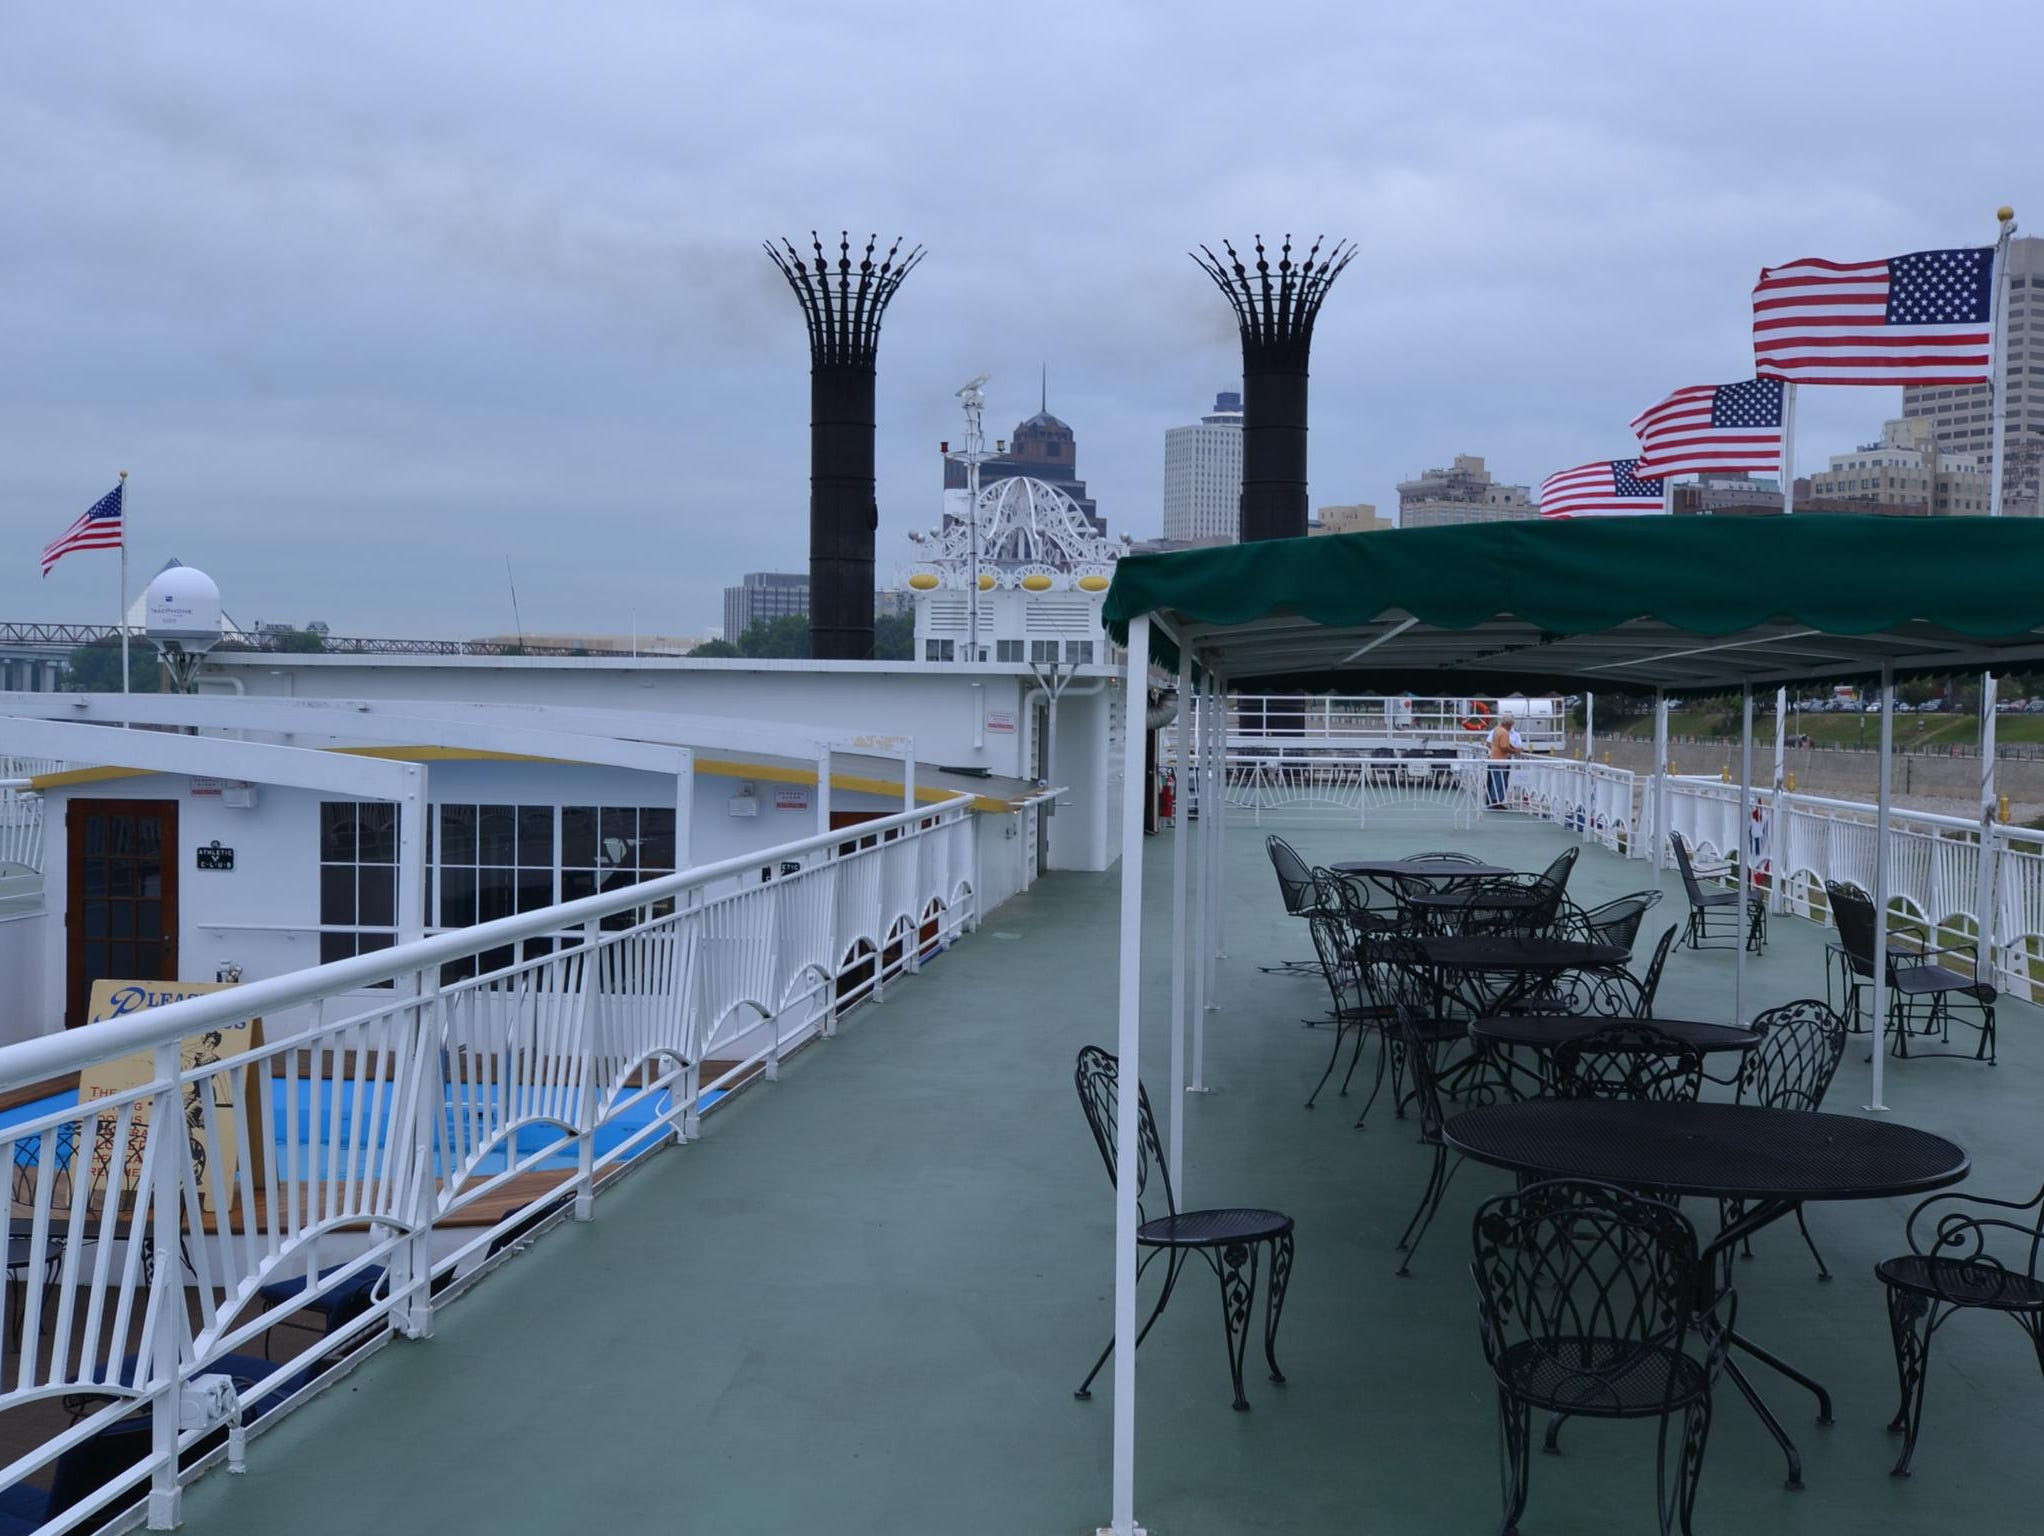 The Sun Deck also features seating areas from where passengers can view passing attractions.